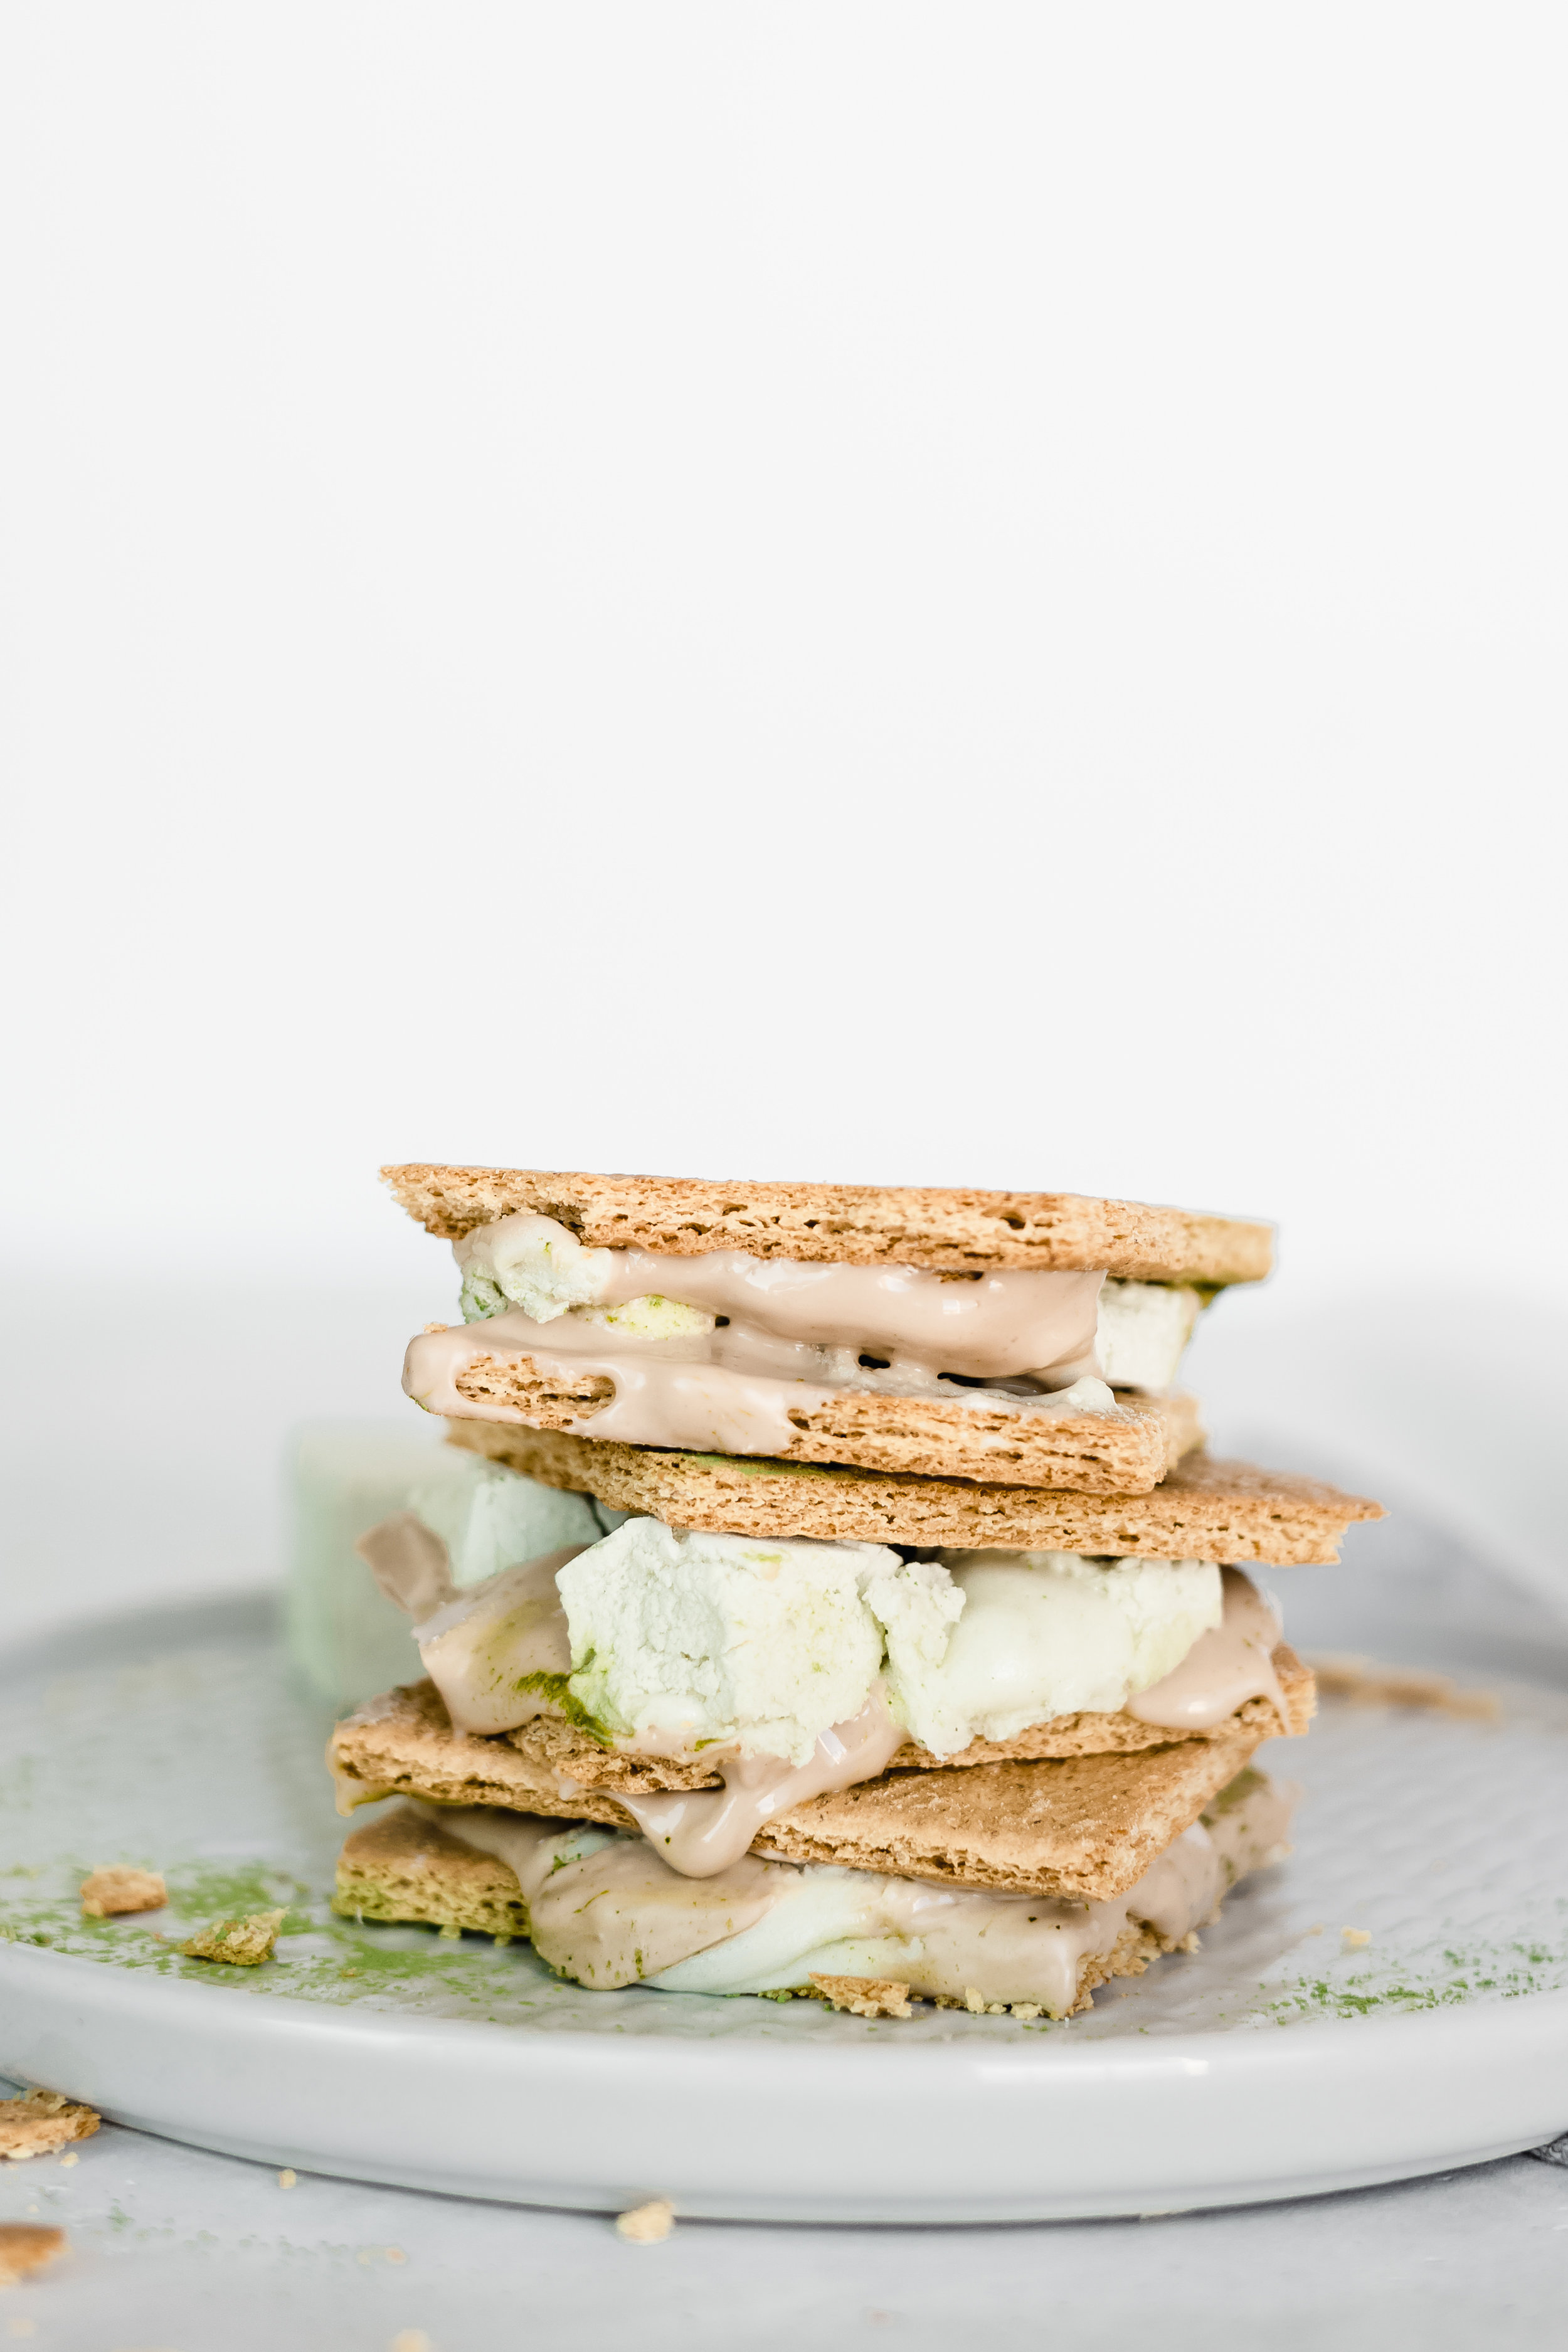 Matcha S'mores - Break a graham cracker in half and lay the two halves out on a plate.Add a few squares of blonde or white chocolate to the top of one half.Next, have a matcha marshmallow heated up, in your preferred method, and add on top of the chocolate. (You can warm the marshmellow over a fire, or stick the whole s'more in the oven or microwave.)Top off with other half of graham cracker.Smoosh together so everything mixes and melts out the sides. Then enjoy a classic s'more!